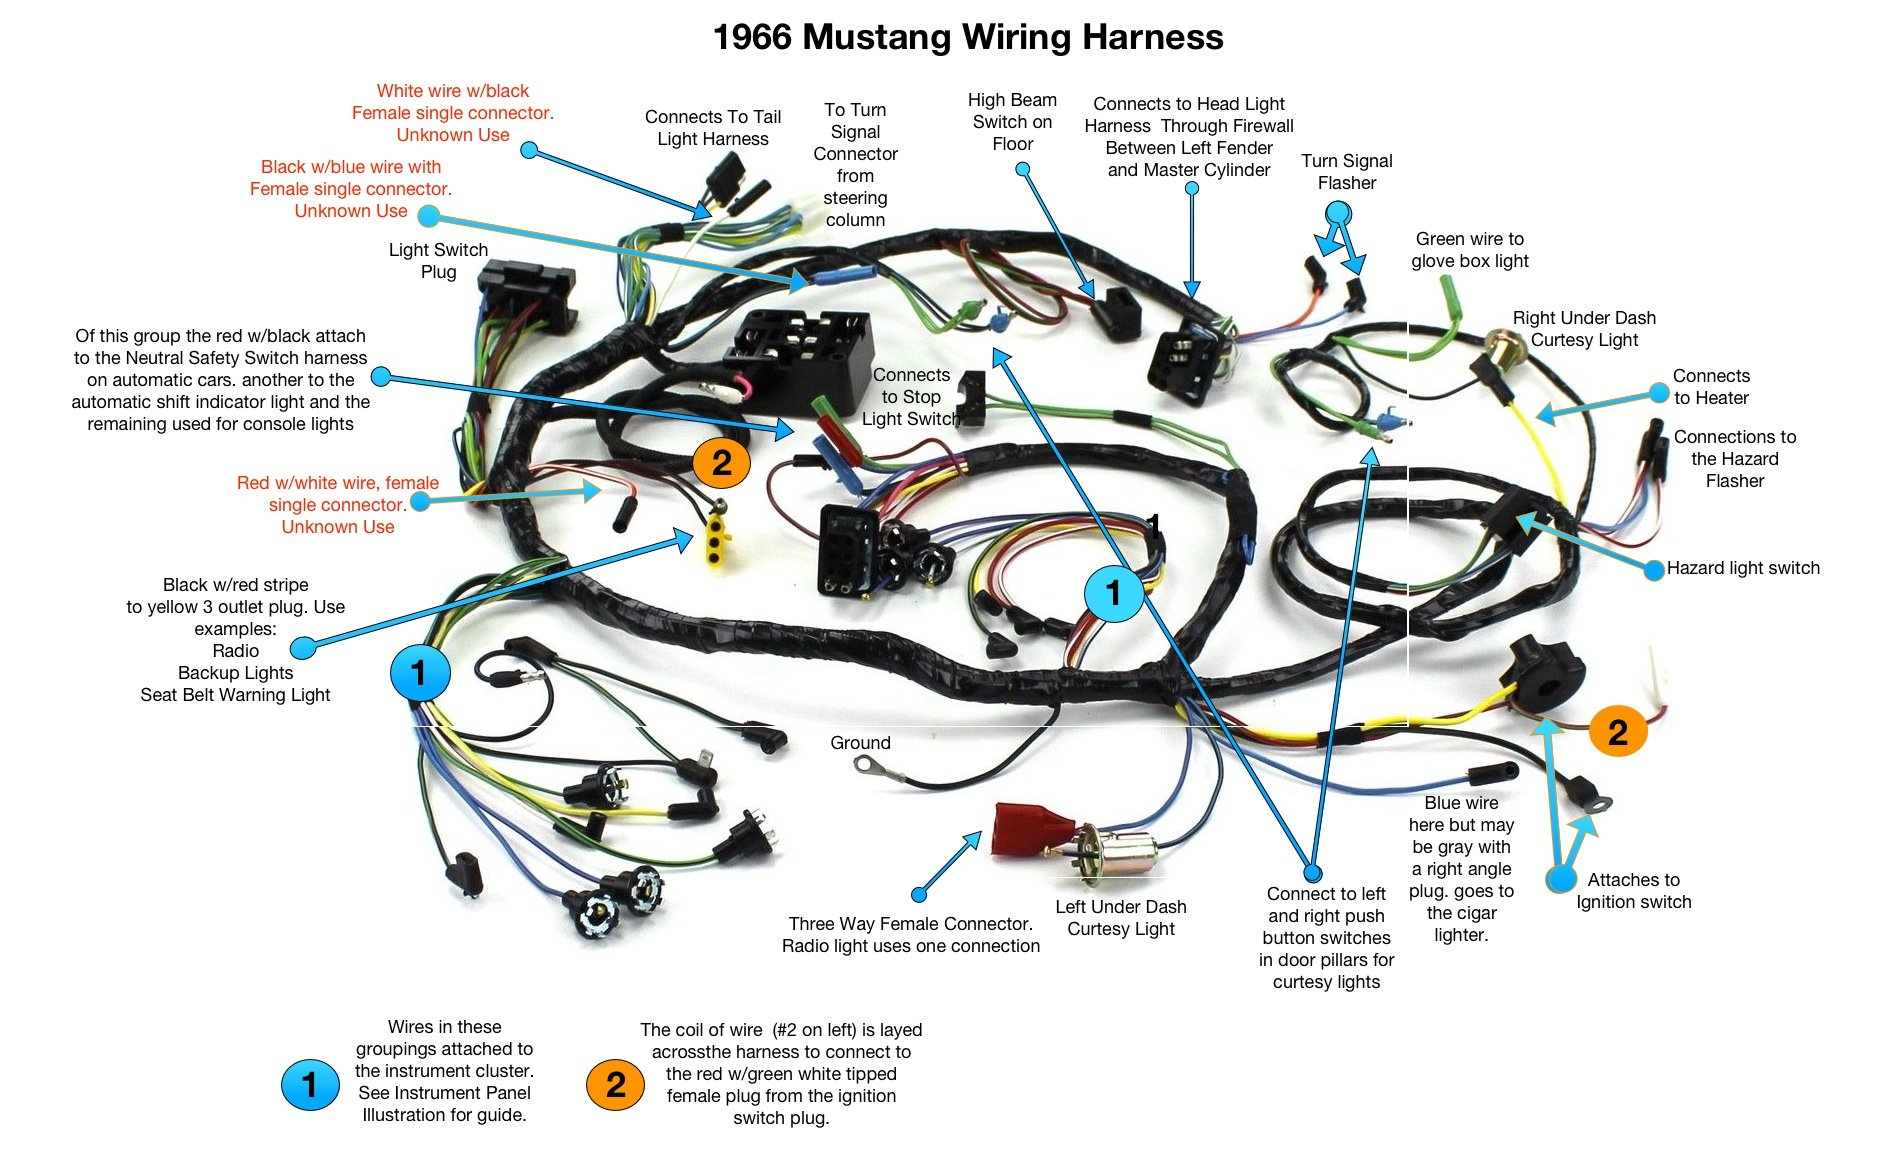 Wiring Harness Diagram Ford Mustang Will Be A Thing Radio Wire 1966 1988 66 Forum Rh Allfordmustangs Com 1999 Stereo 2000